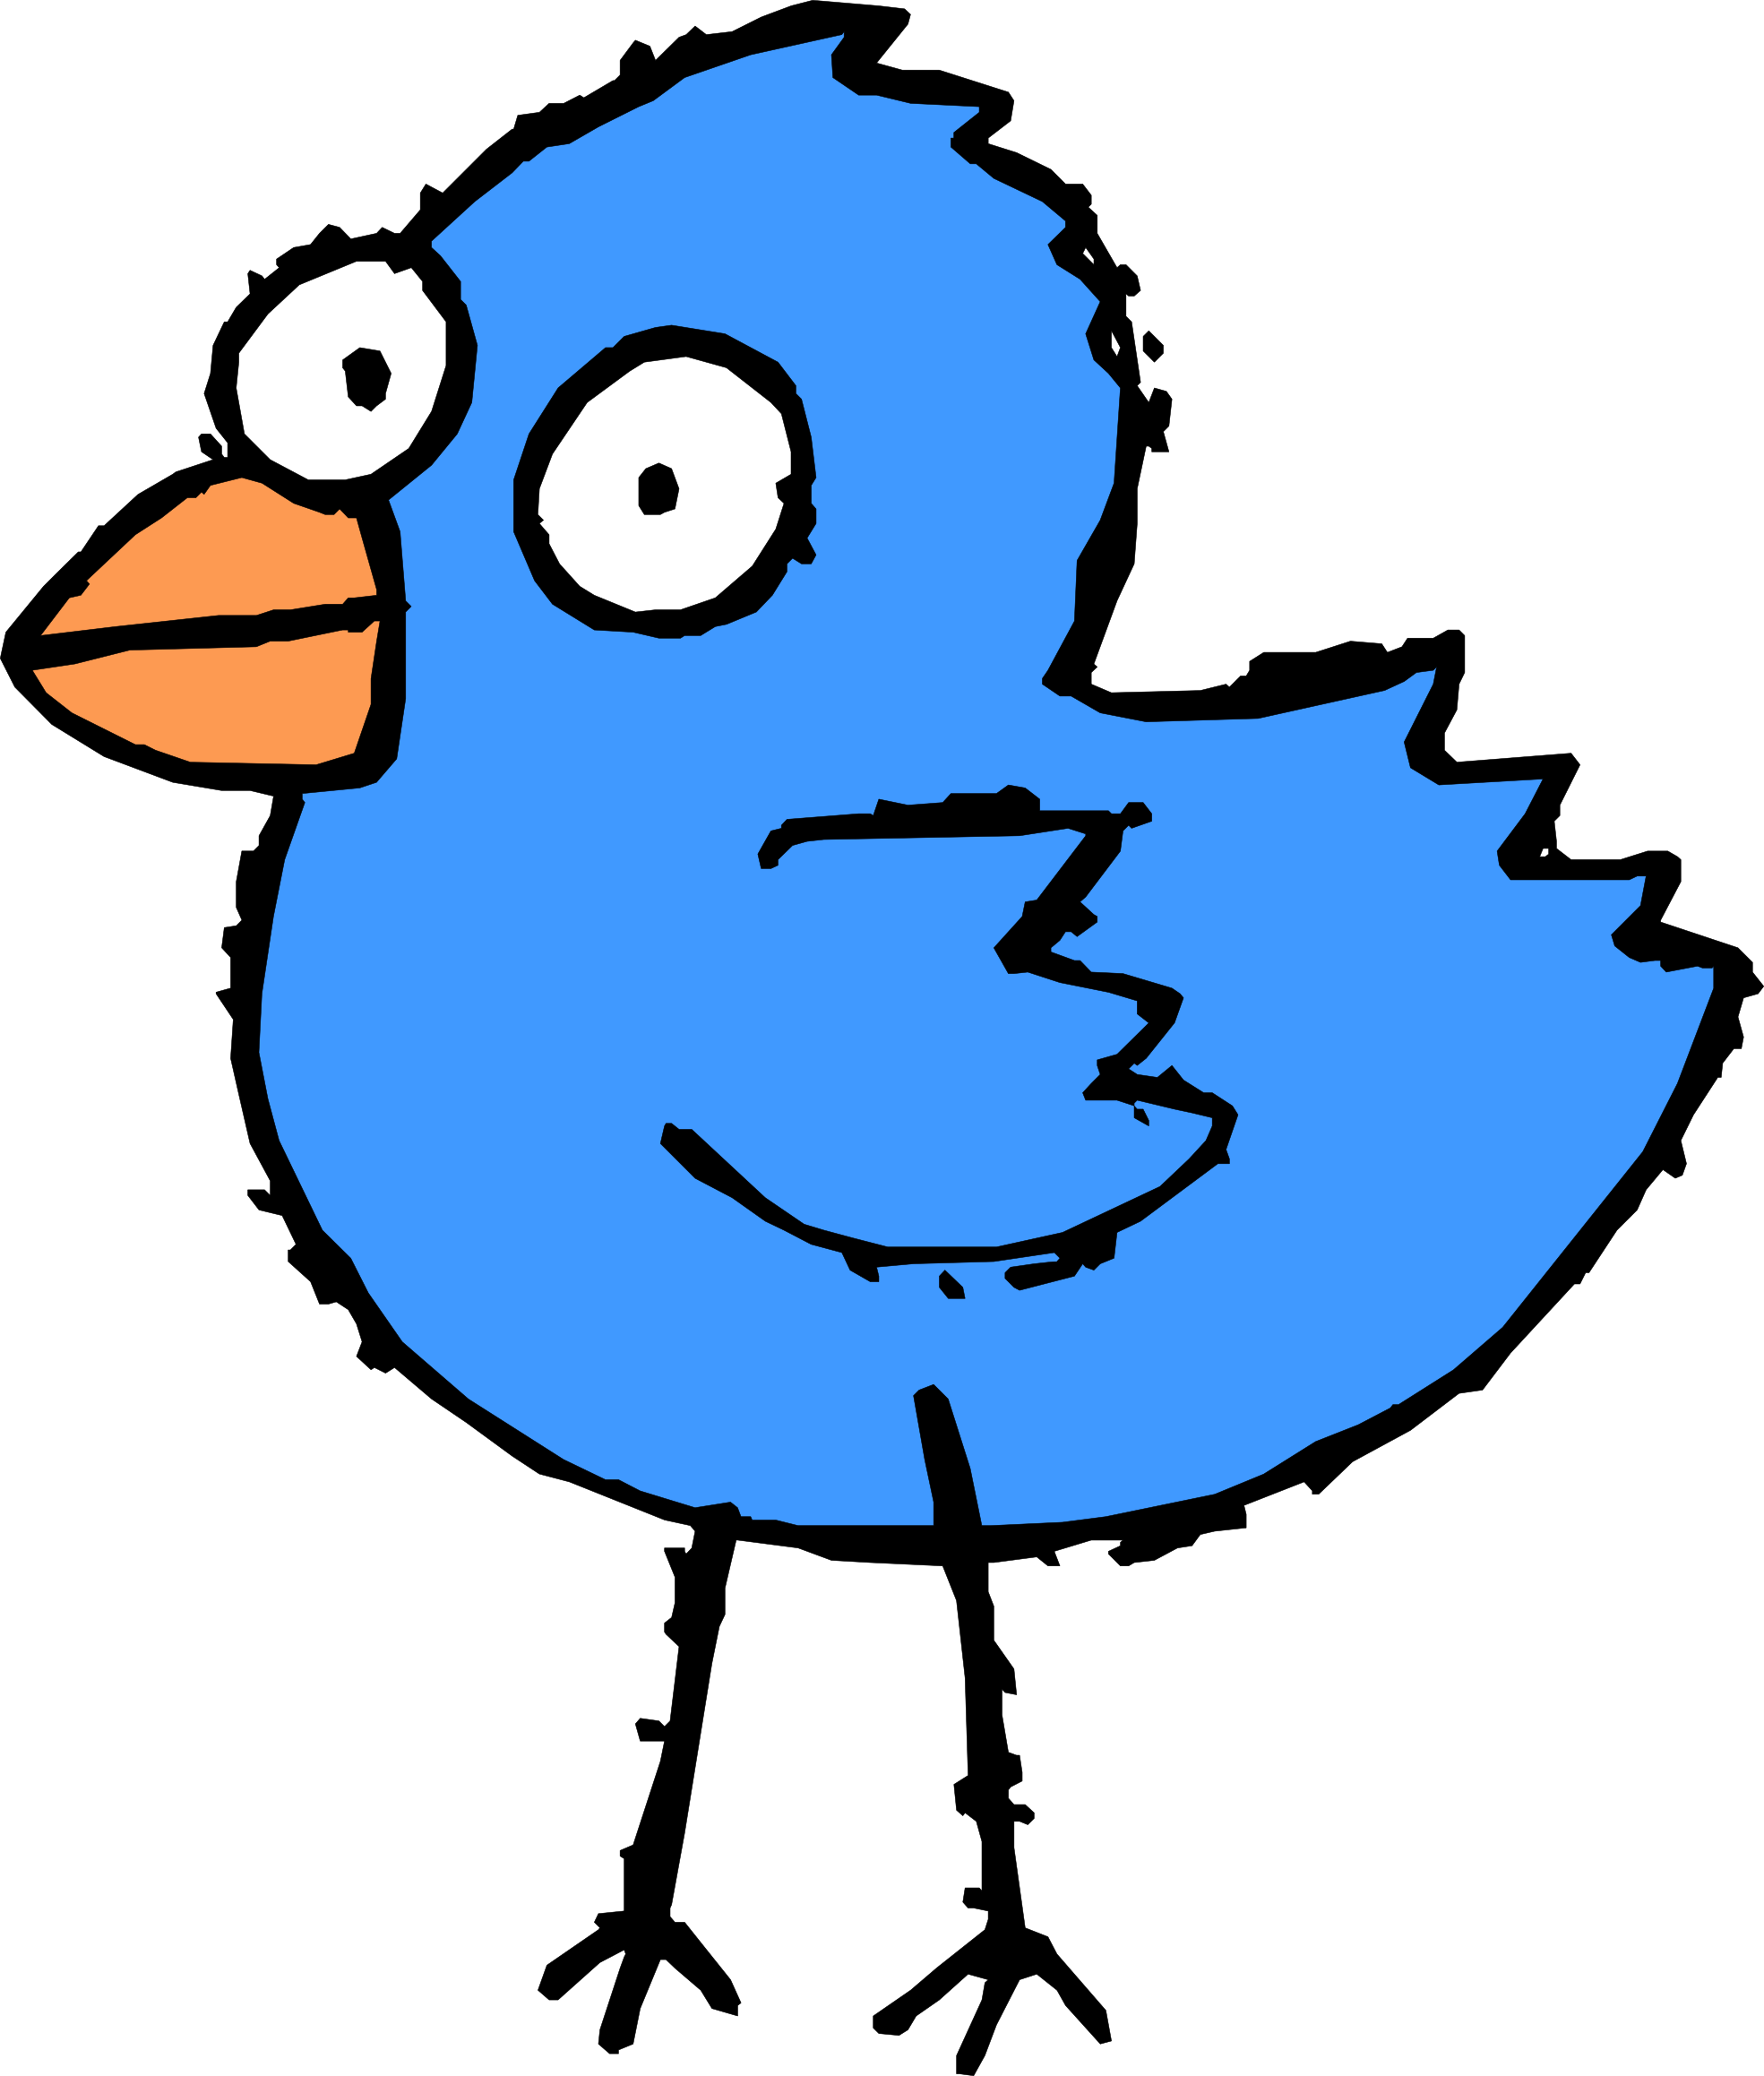 And Twitter Cartoon Black White Drawing Bird PNG Image